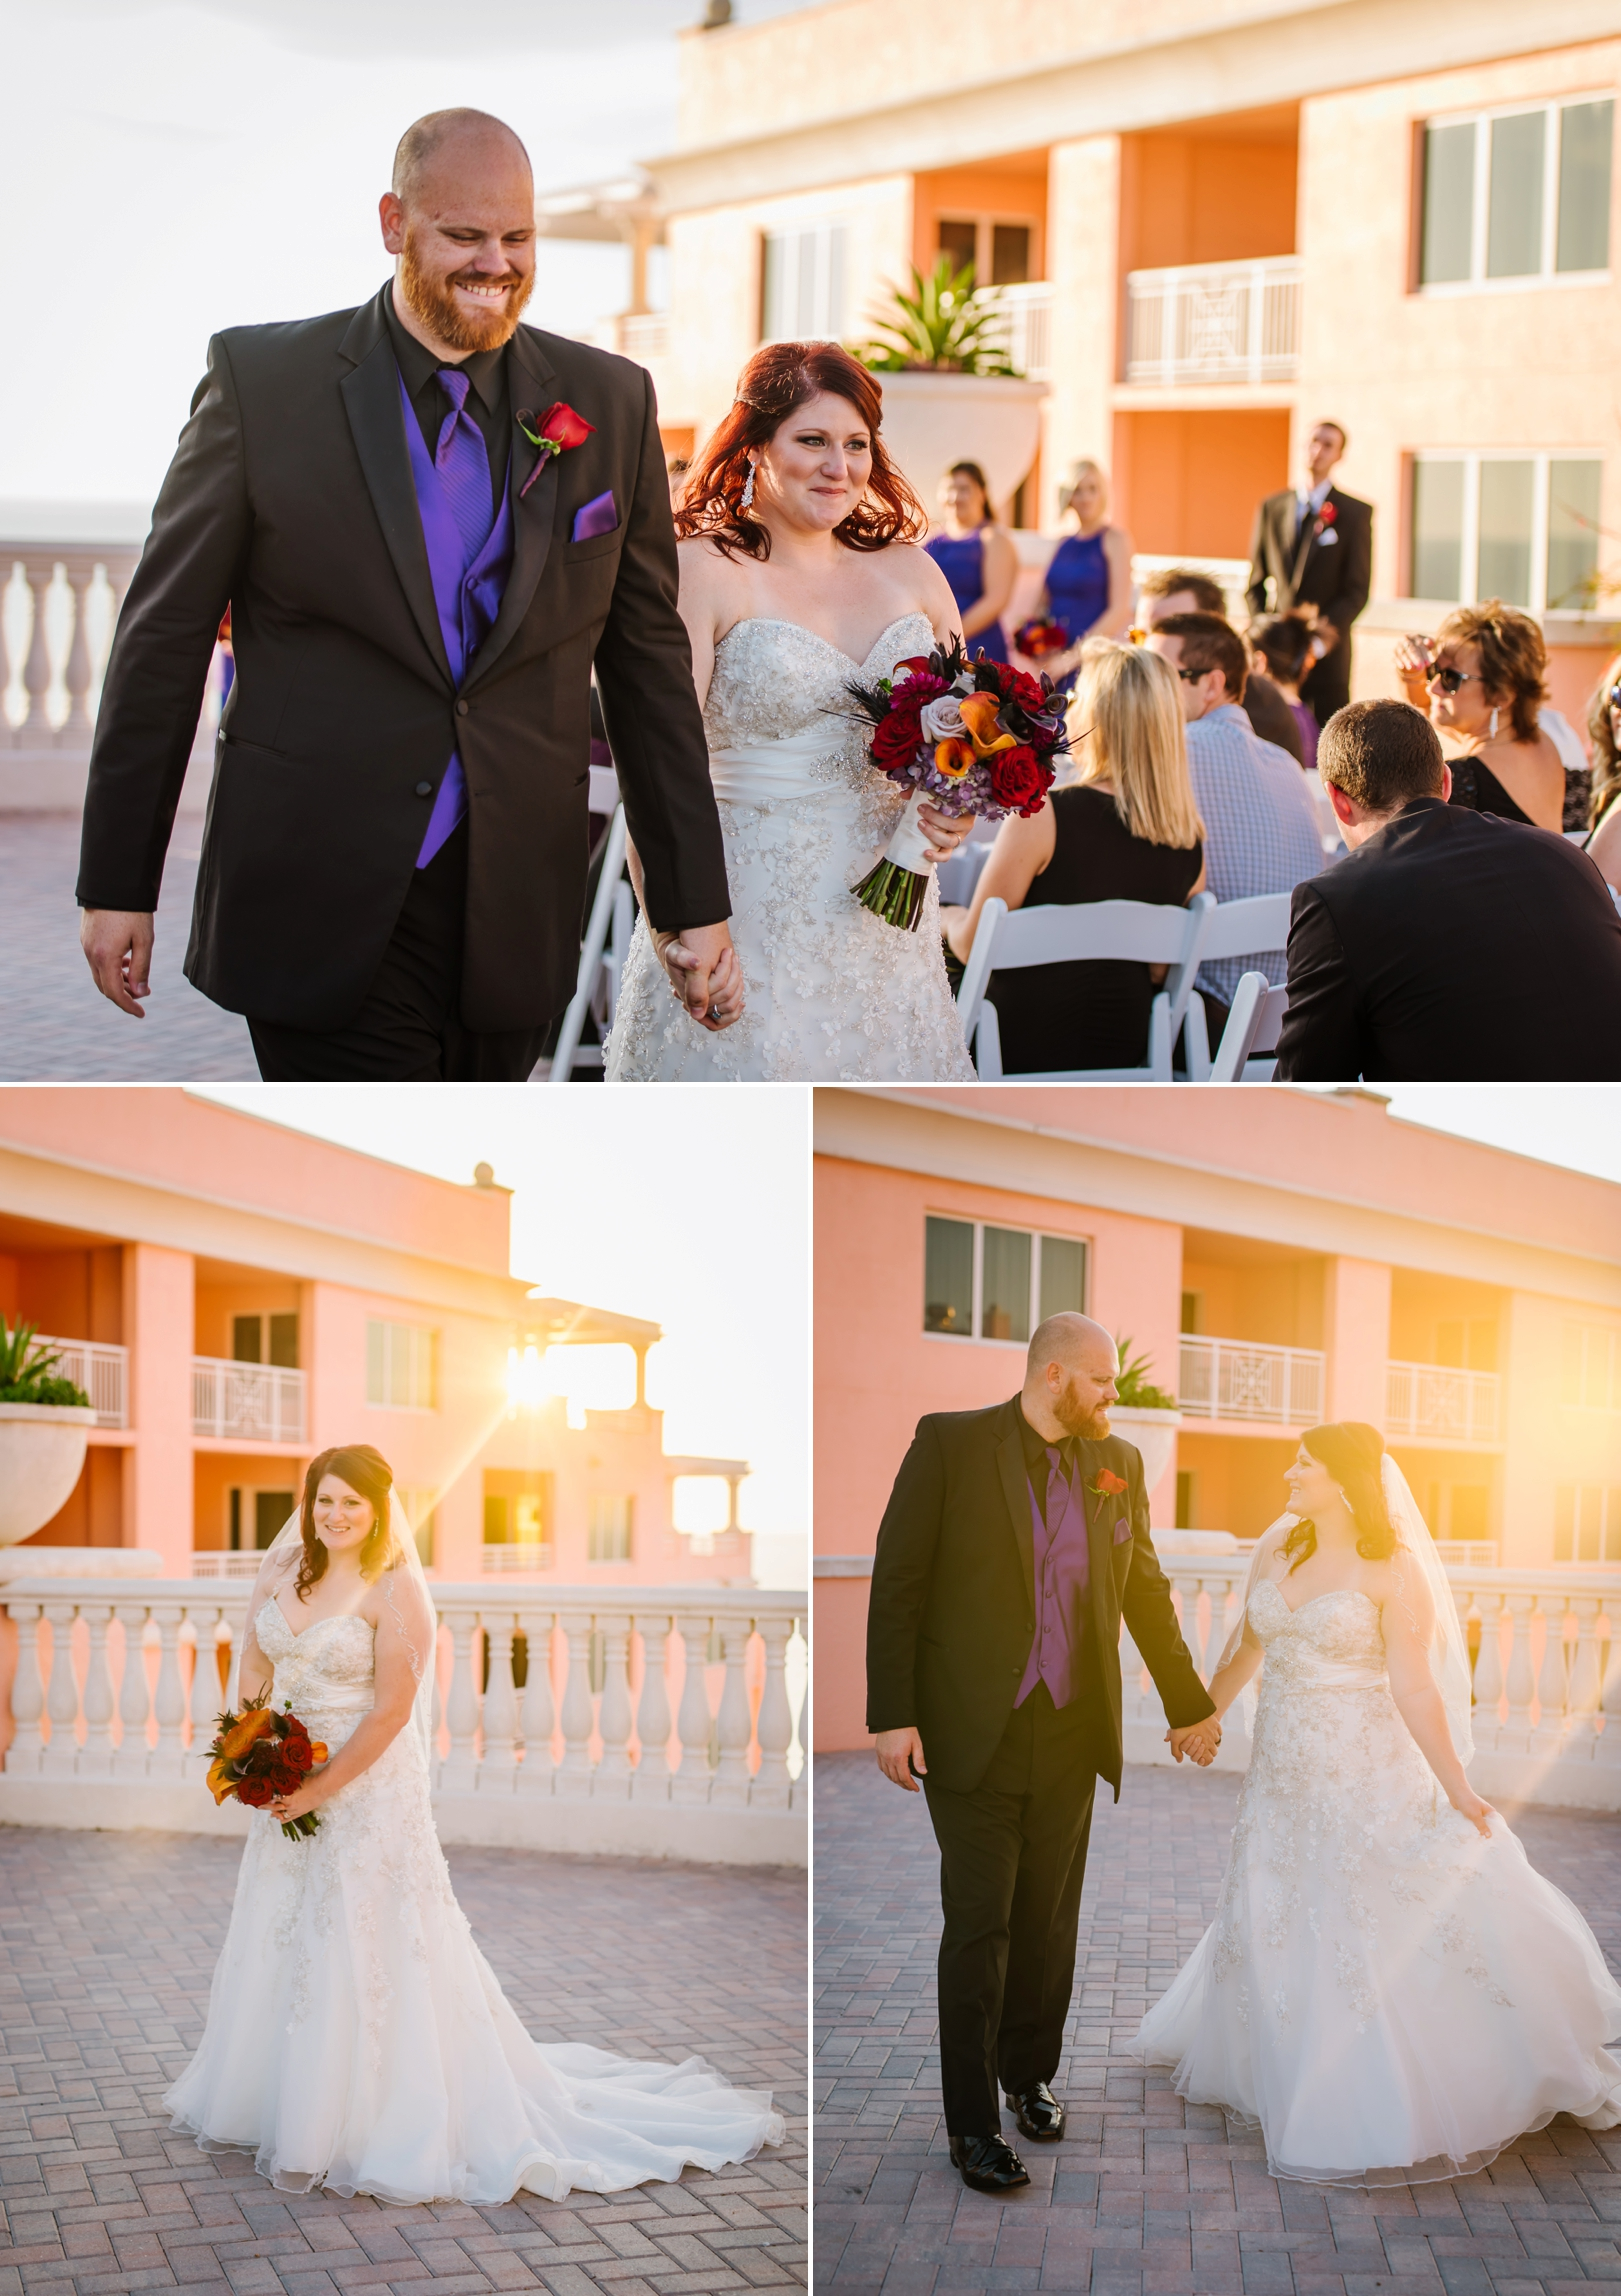 clearwater-beach-hyatt-masquerade-ballroom-themed-wedding-photograpy_0014.jpg